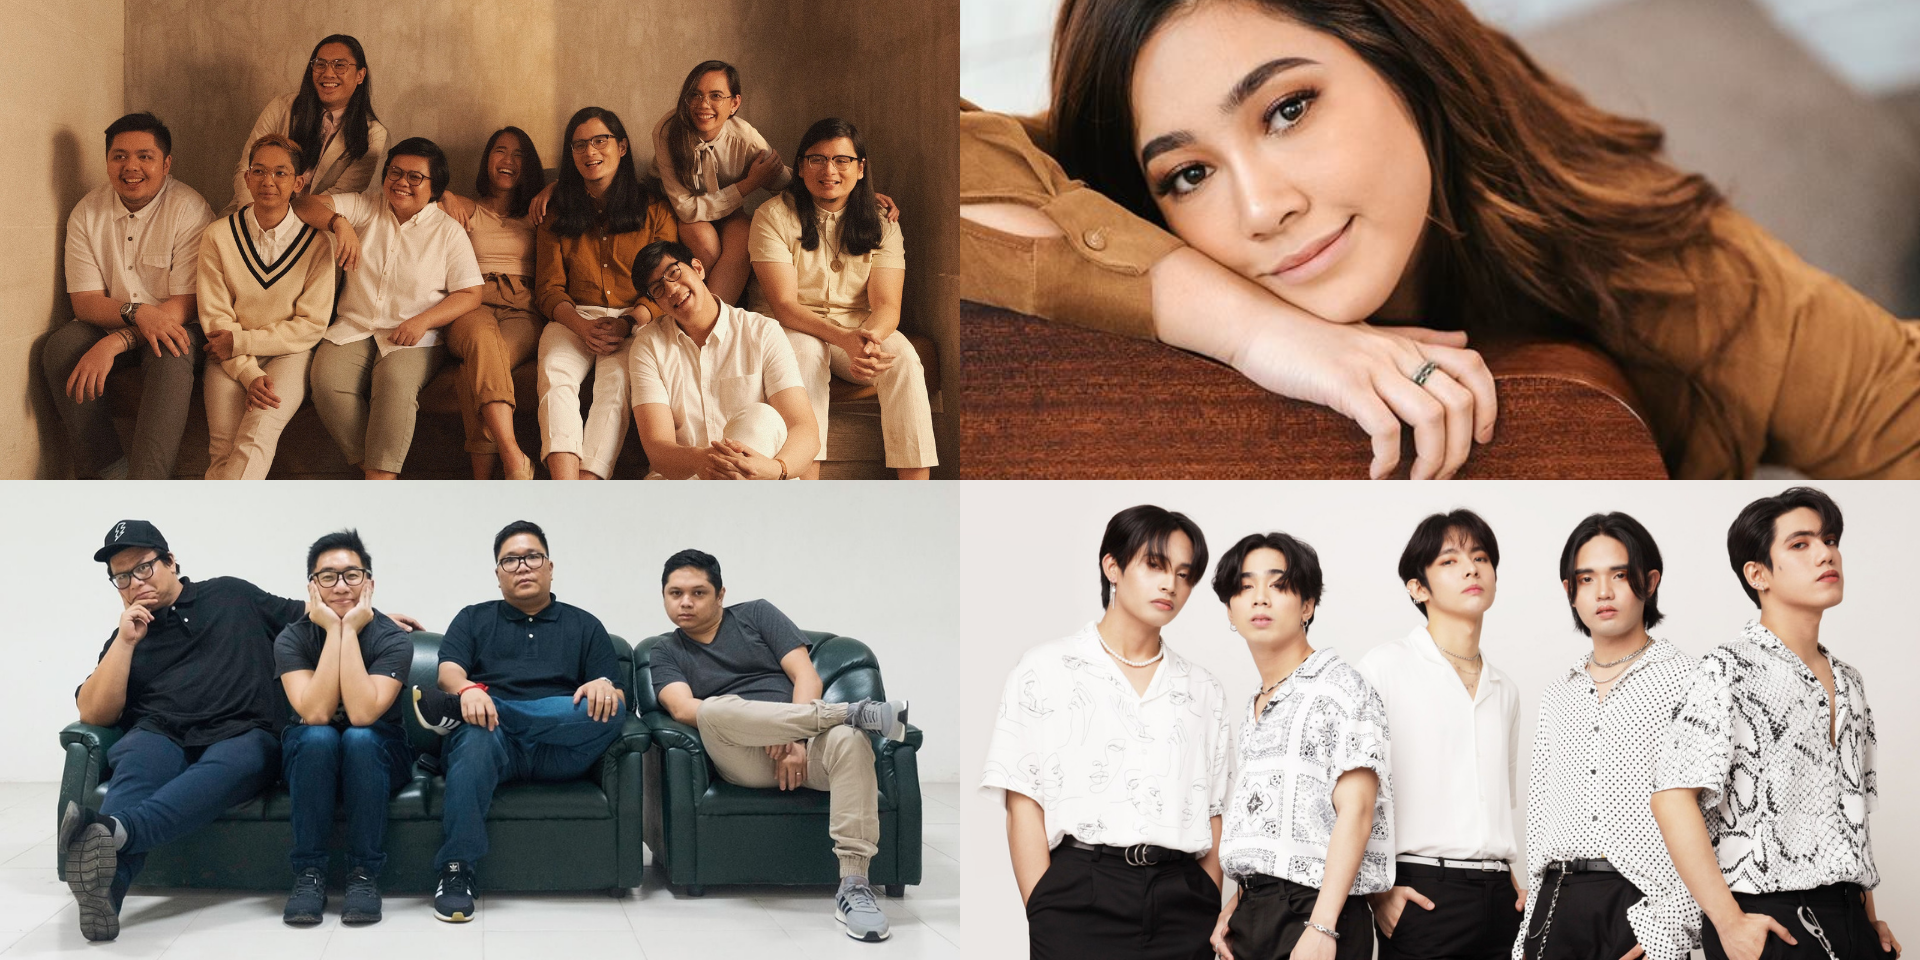 Join Ben&Ben, Moira Dela Torre, SB19, The Itchyworms, and more at 'BYE2020' virtual concert